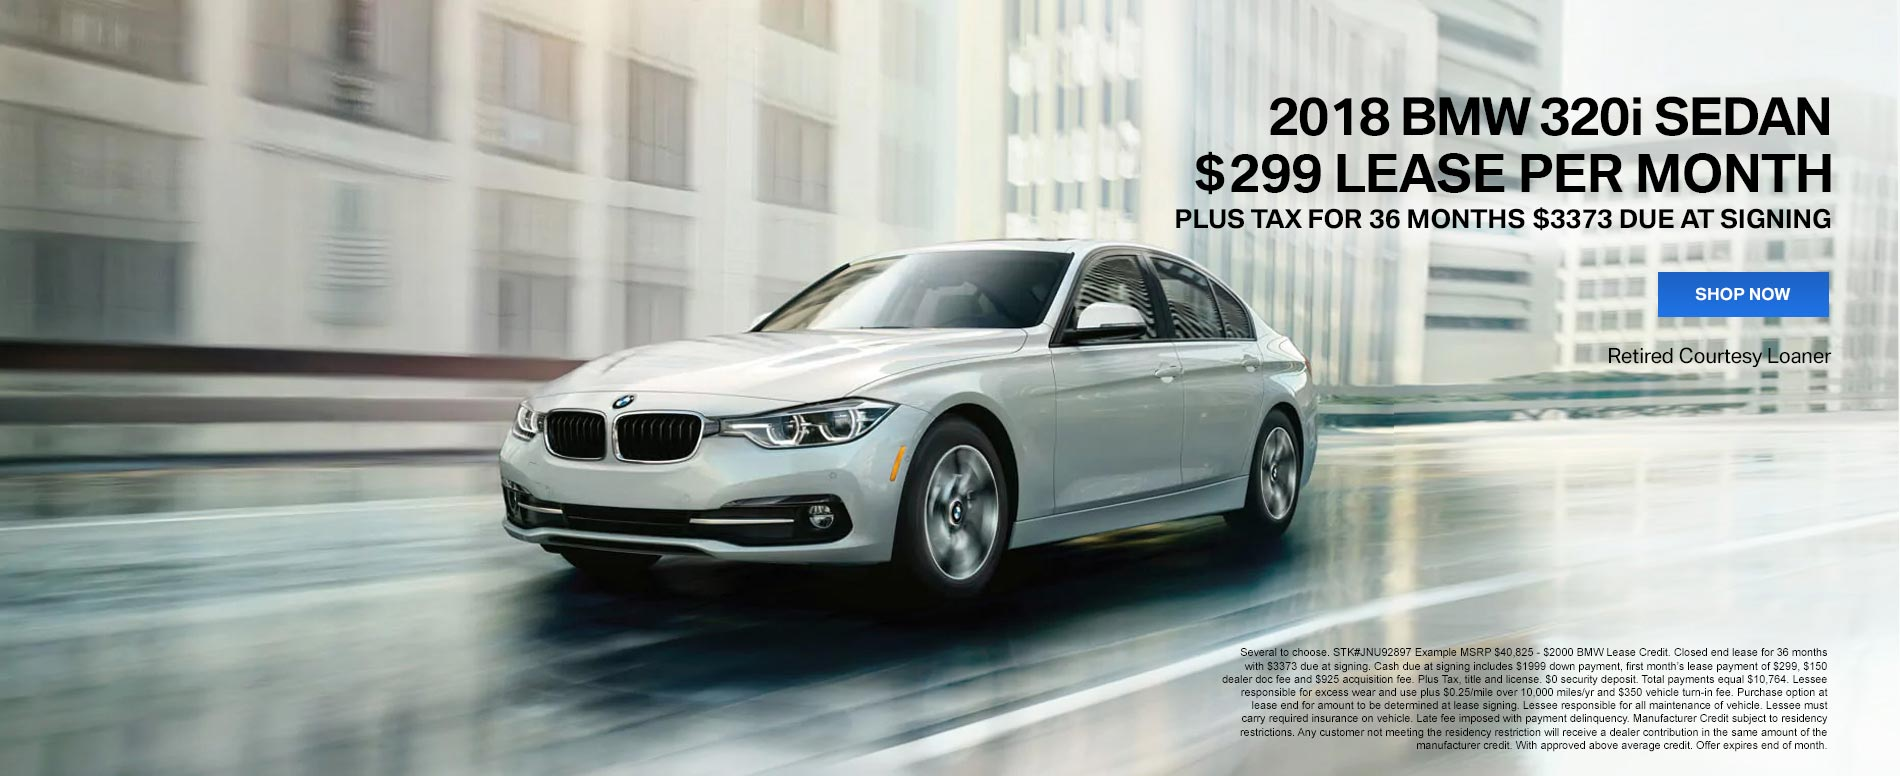 bmw dealership in dallas tx bmw of dallas rh bmwofdallas com bmwusa owners manuals html bmw usa service manual